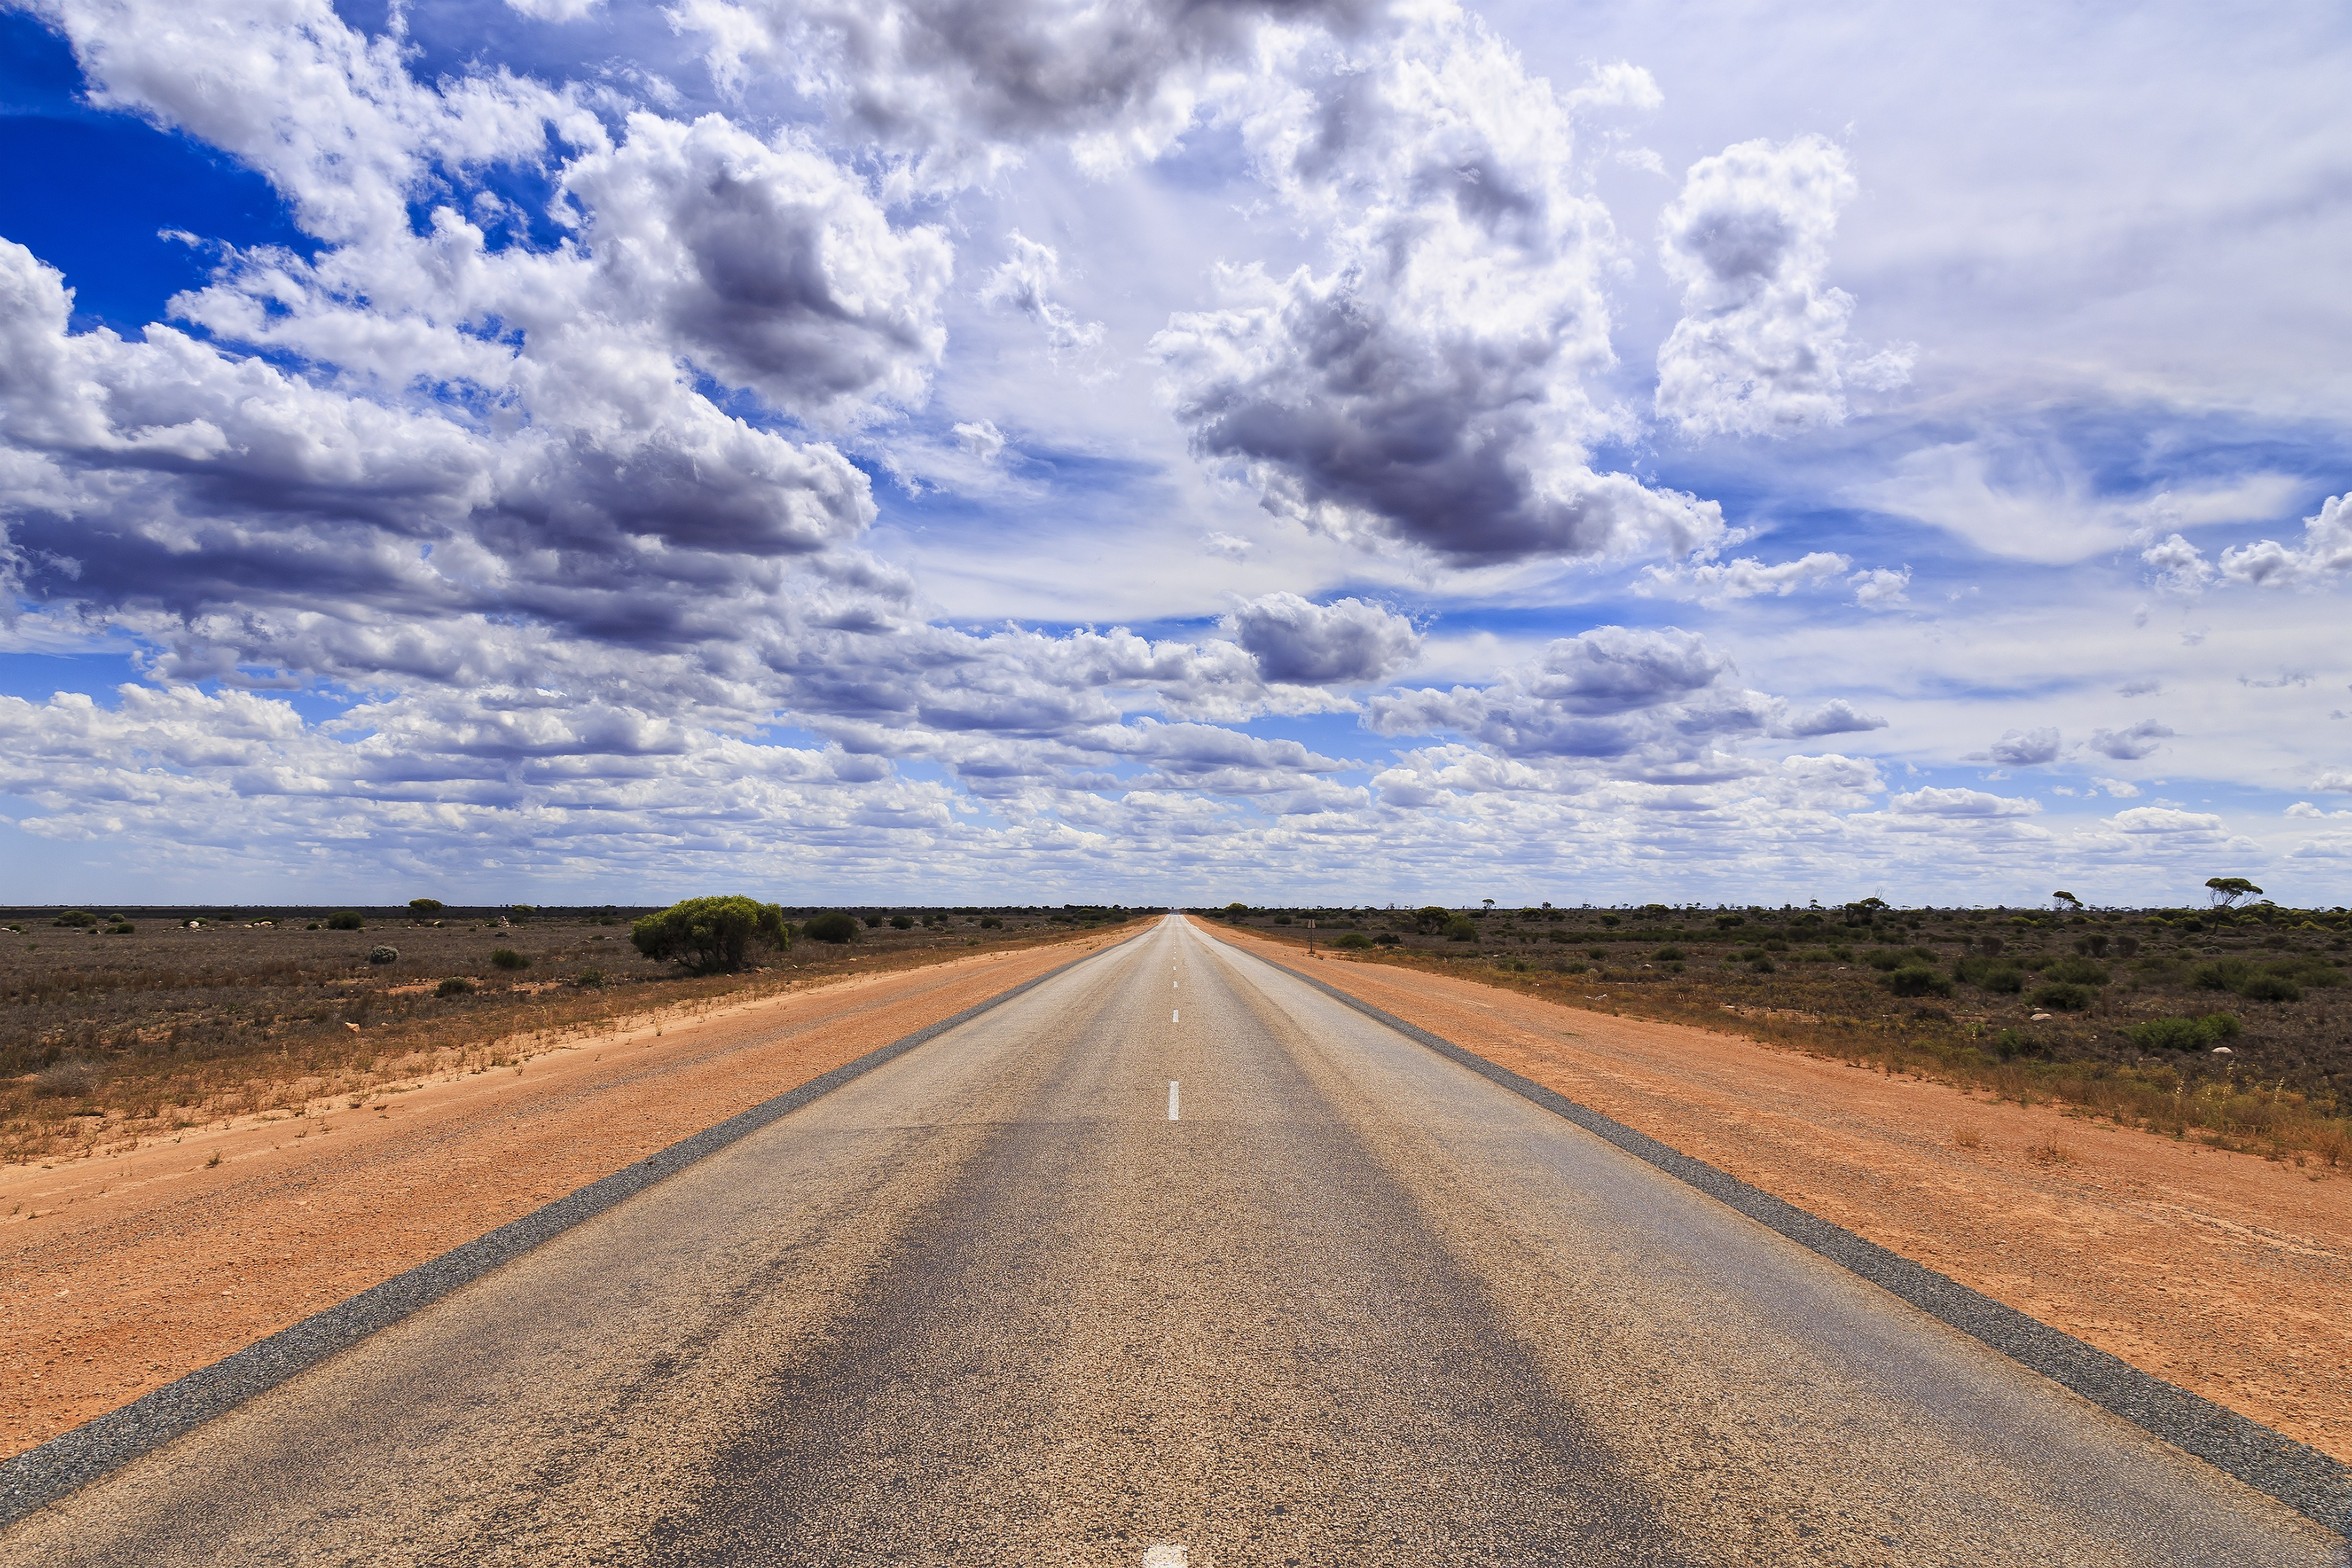 The Longest Straight Road in the World Is... - Condé Nast Traveler